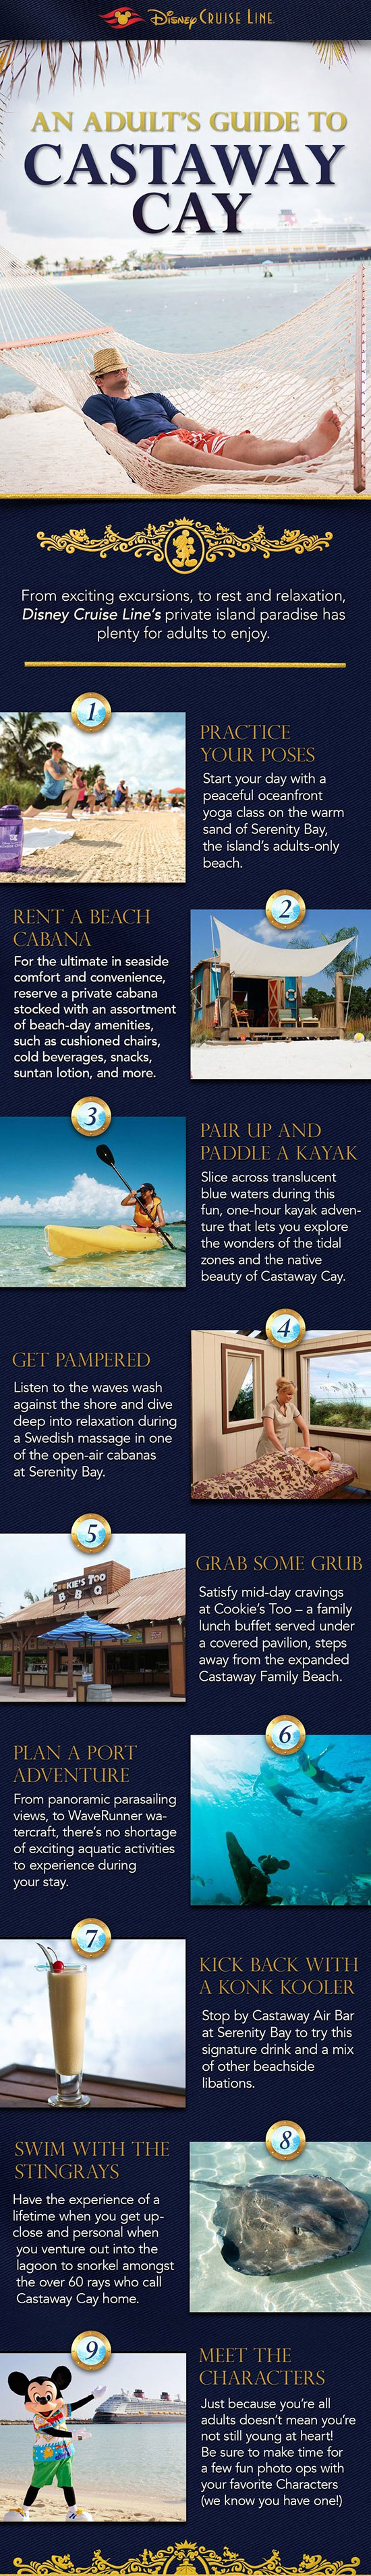 An Adult's Guide to Castaway Cay with Disney Cruise Line